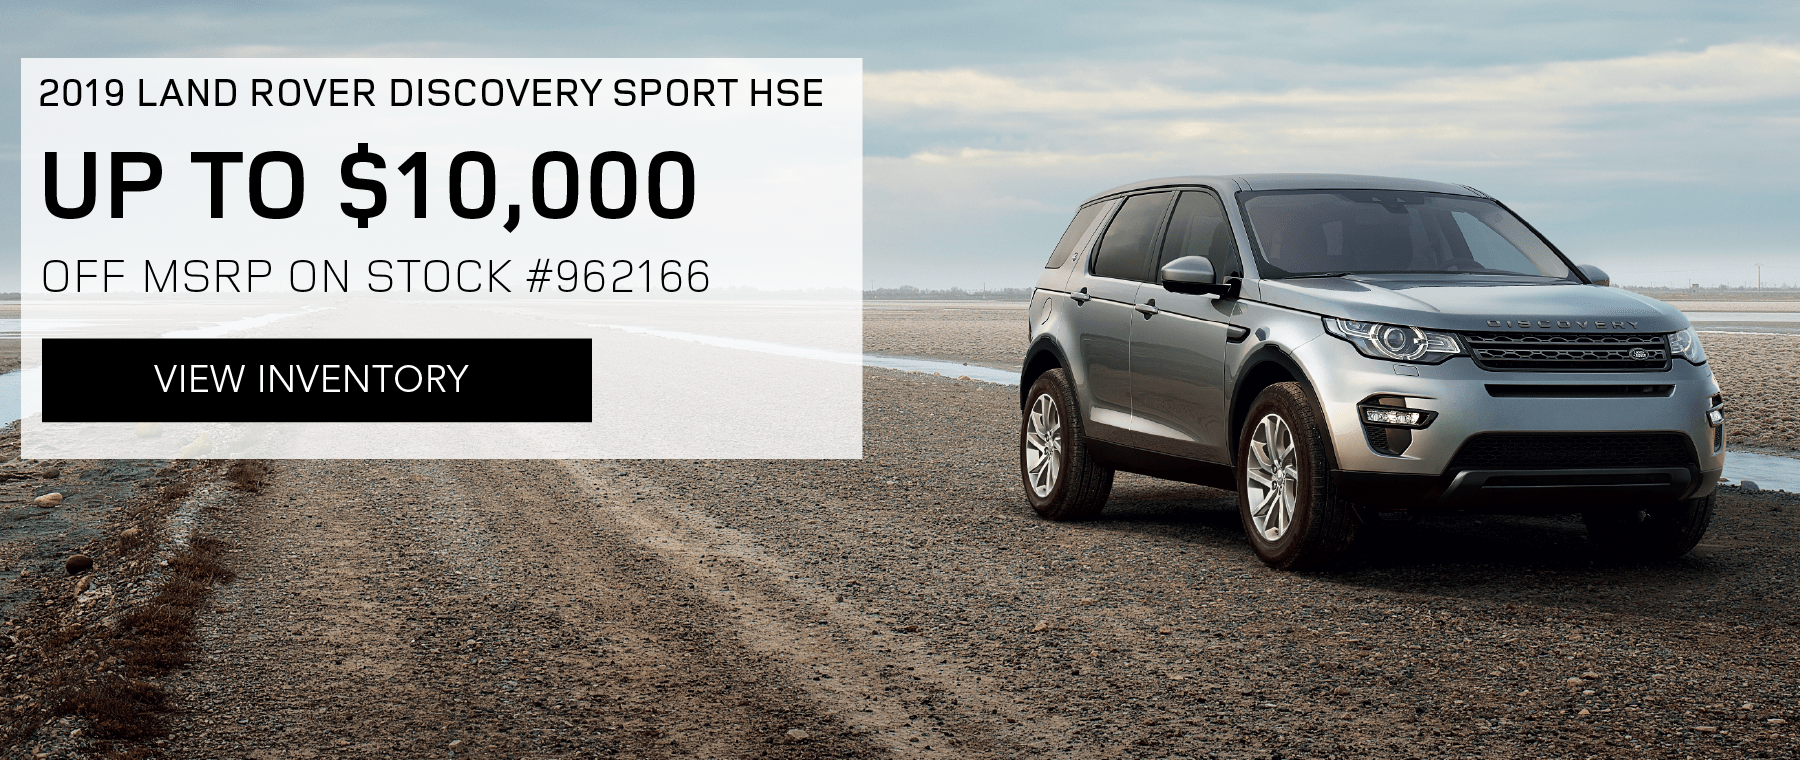 2019 LAND ROVER DISCOVERY SPORT HSE. UP TO $10,000 OFF MSRP ON STOCK NUMBER 962166. VIEW INVENTORY. LIGHT BLUE DISCOVERY SPORT DRIVING DOWN DIRT ROAD.